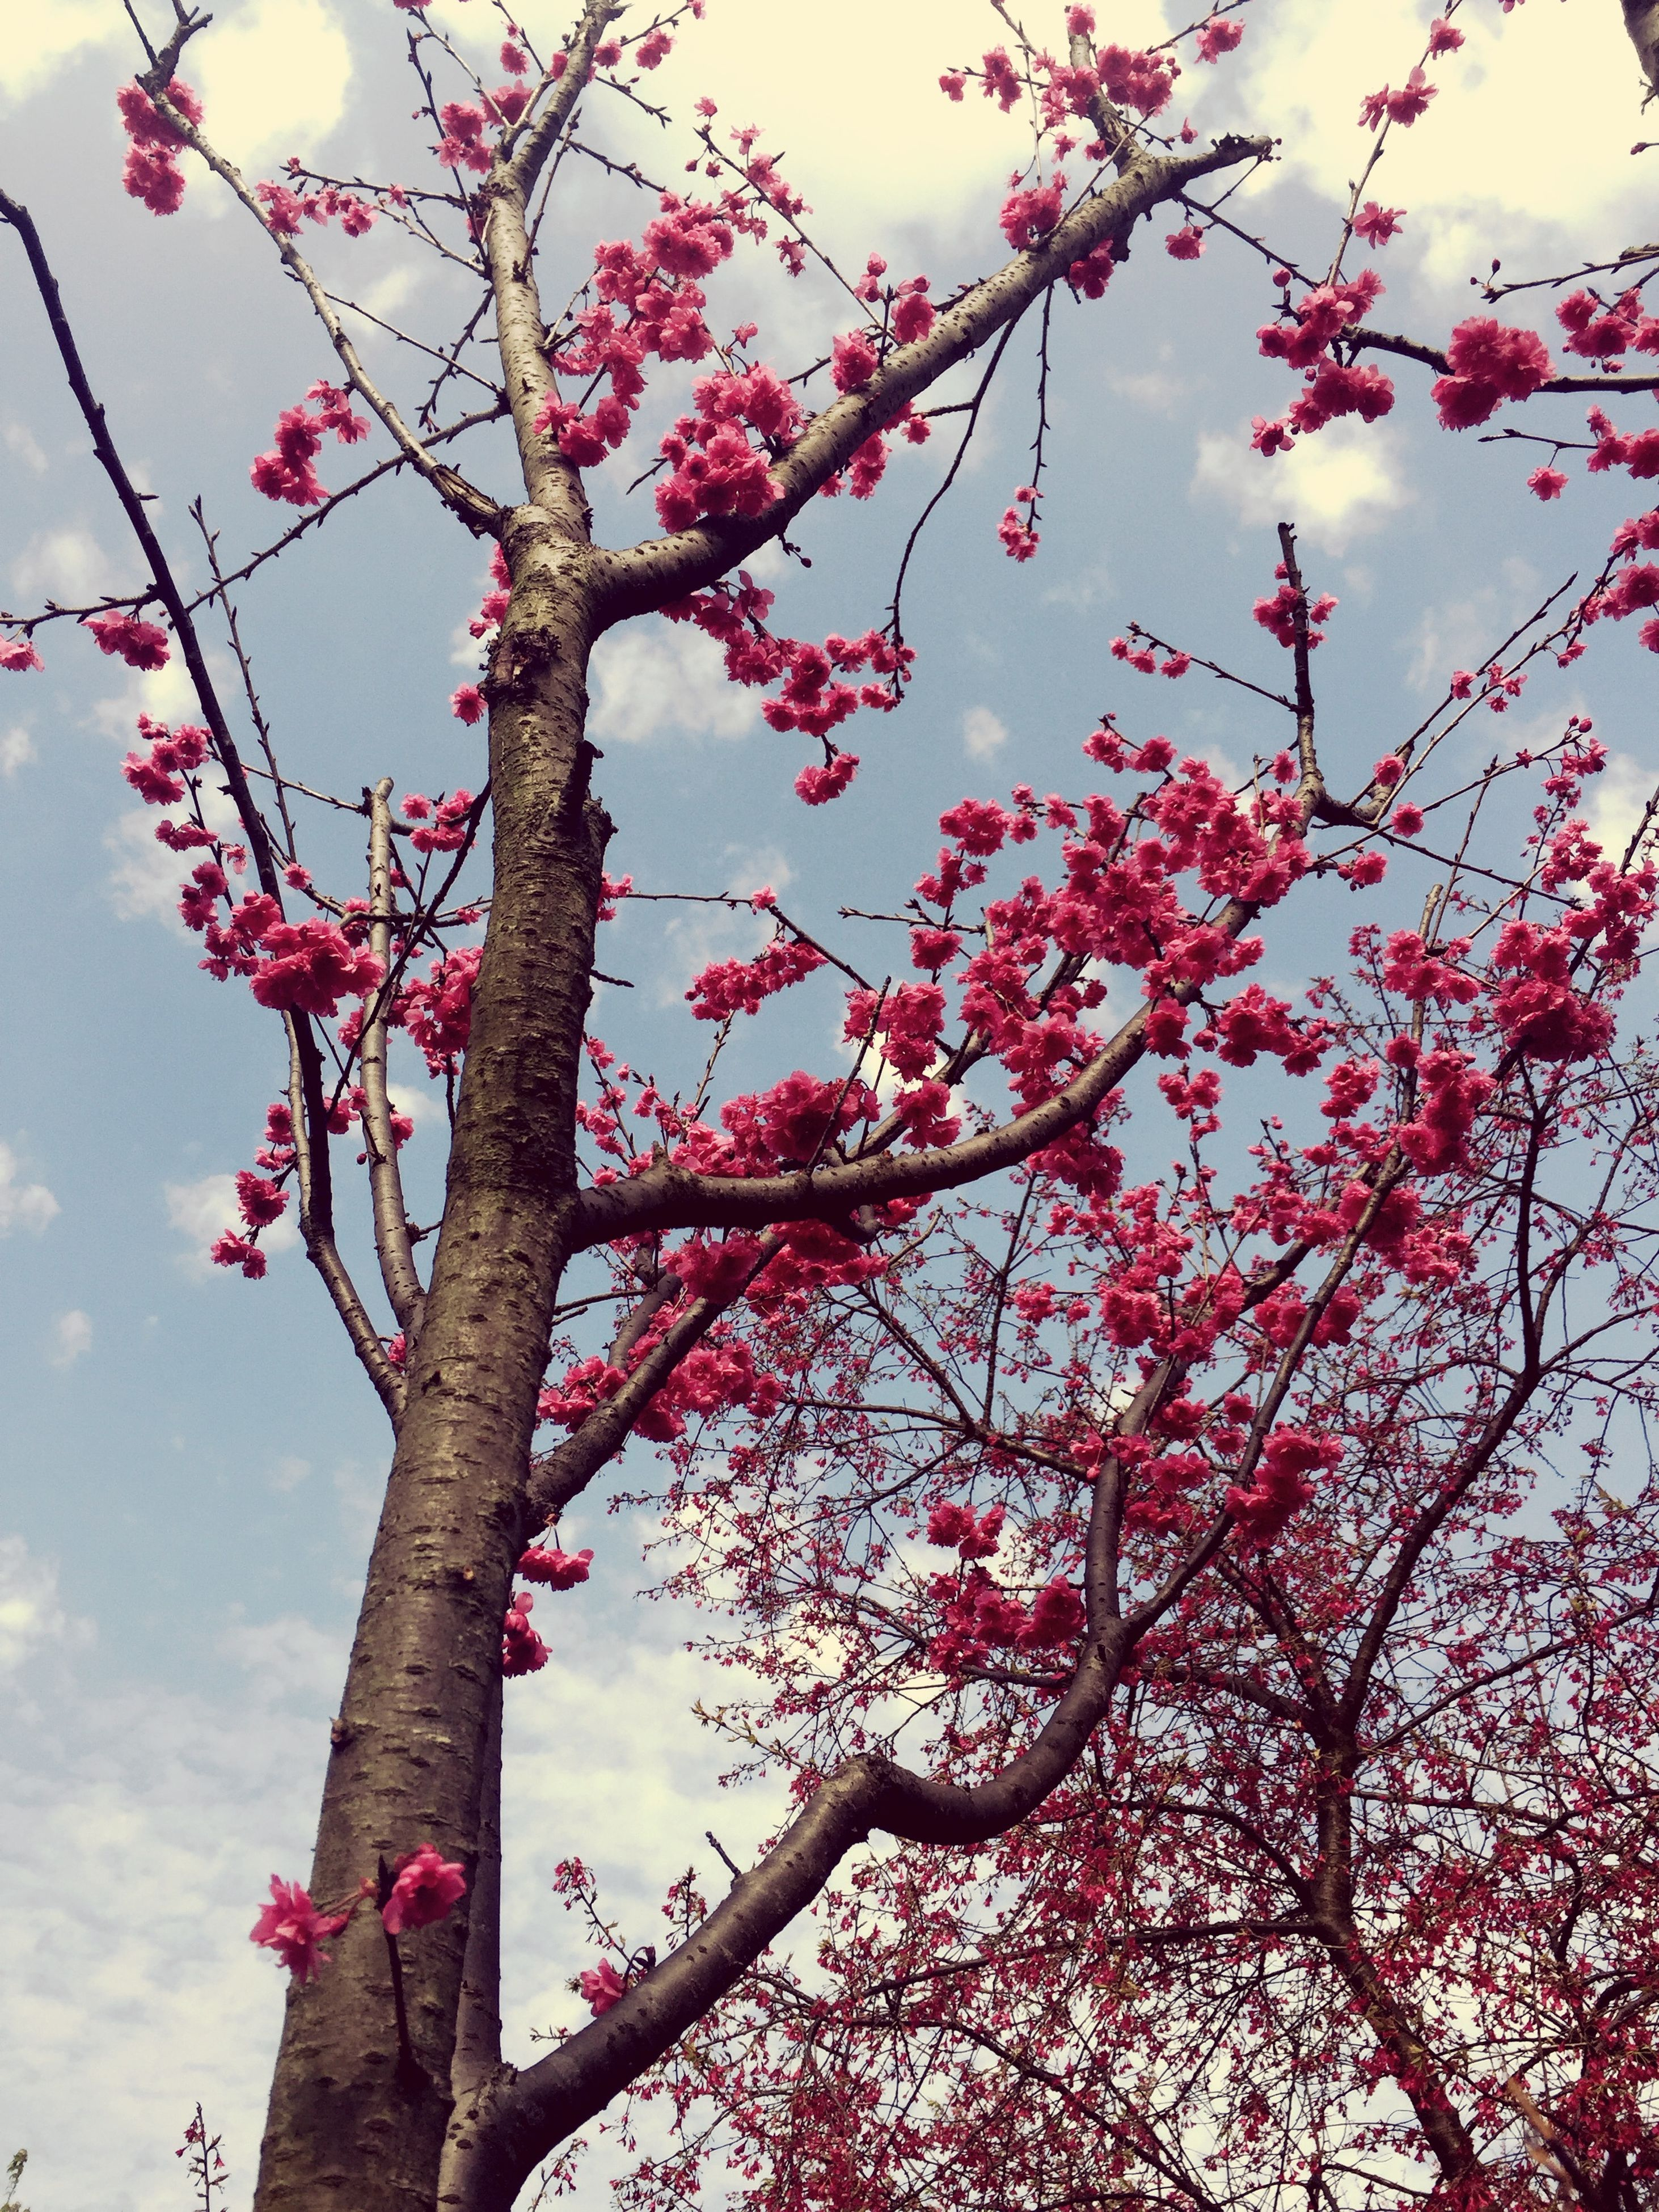 flower, low angle view, branch, tree, growth, pink color, freshness, sky, fragility, nature, beauty in nature, cherry blossom, cherry tree, blossom, blooming, in bloom, twig, springtime, day, outdoors